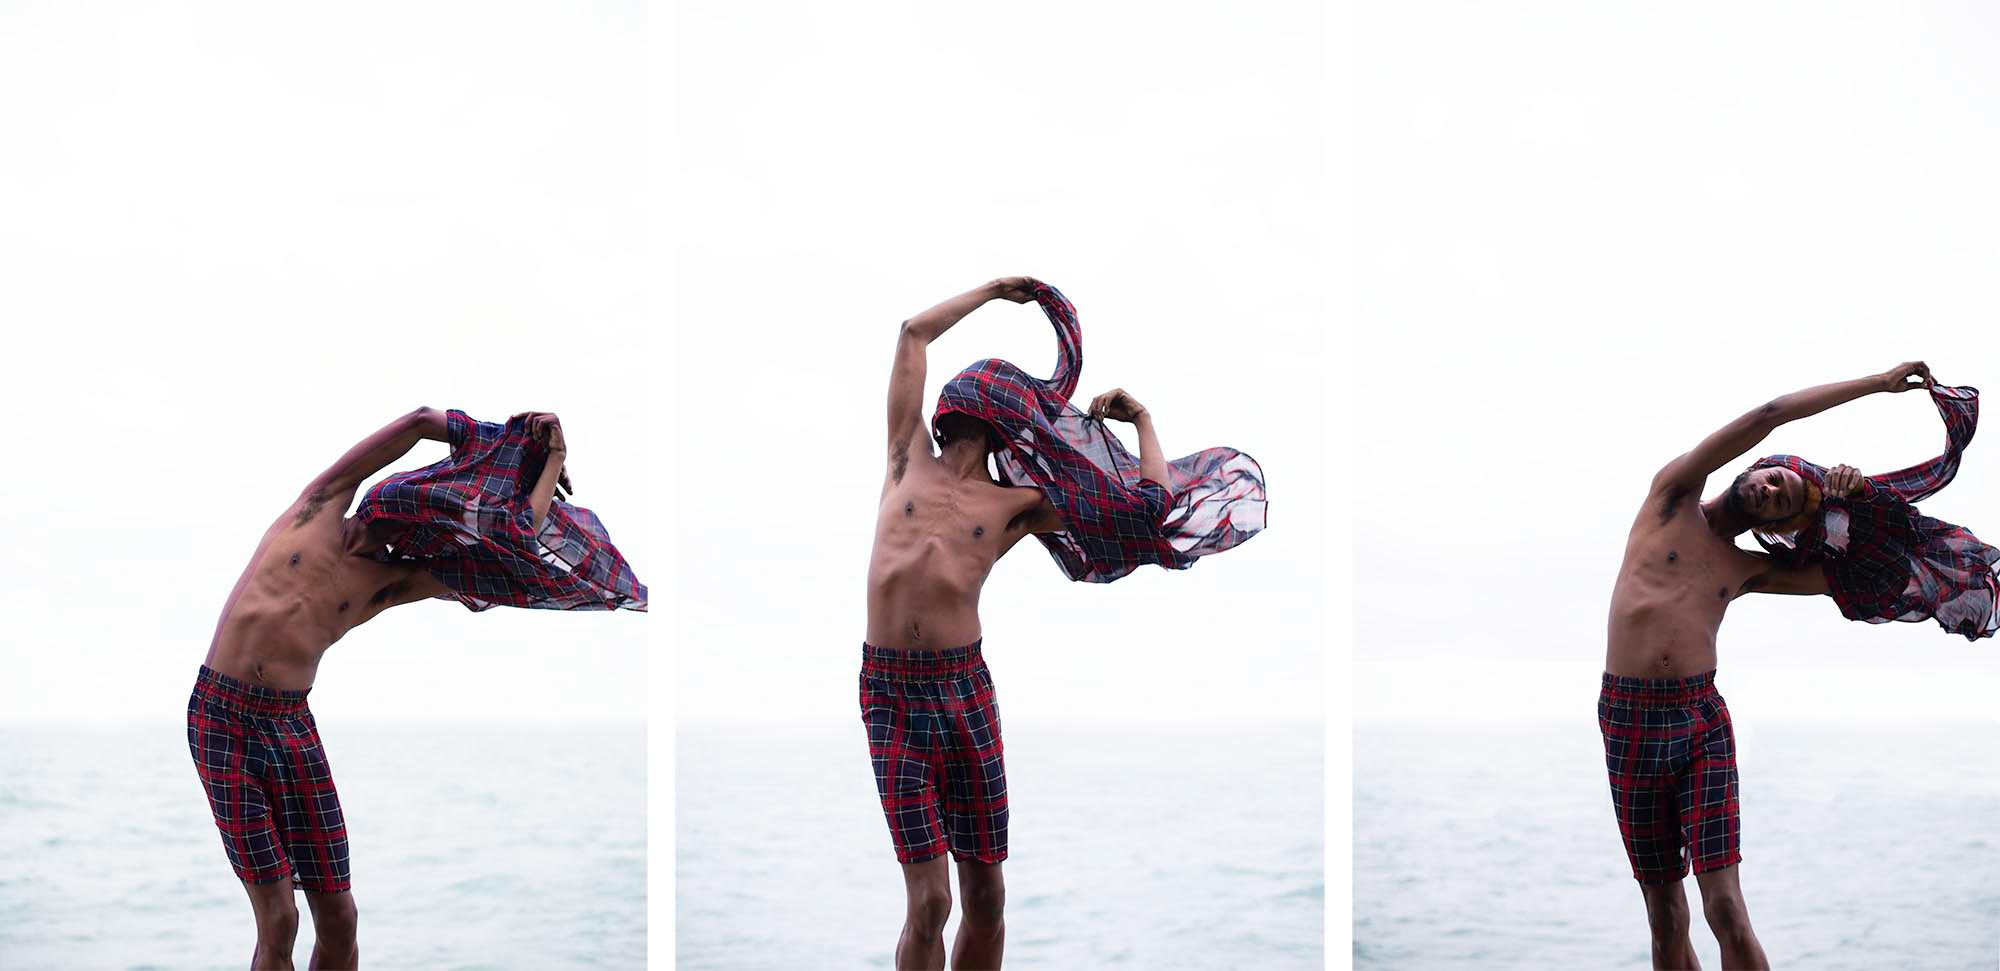 Image: A triptych of Wallace standing in front of a body of water, taking of a sheer plaid shirt. Each image shows Wallace with the shirt over his head, in different postures, and points of disrobing as the shirt waves in the wind. Photo by Chelsea Ross